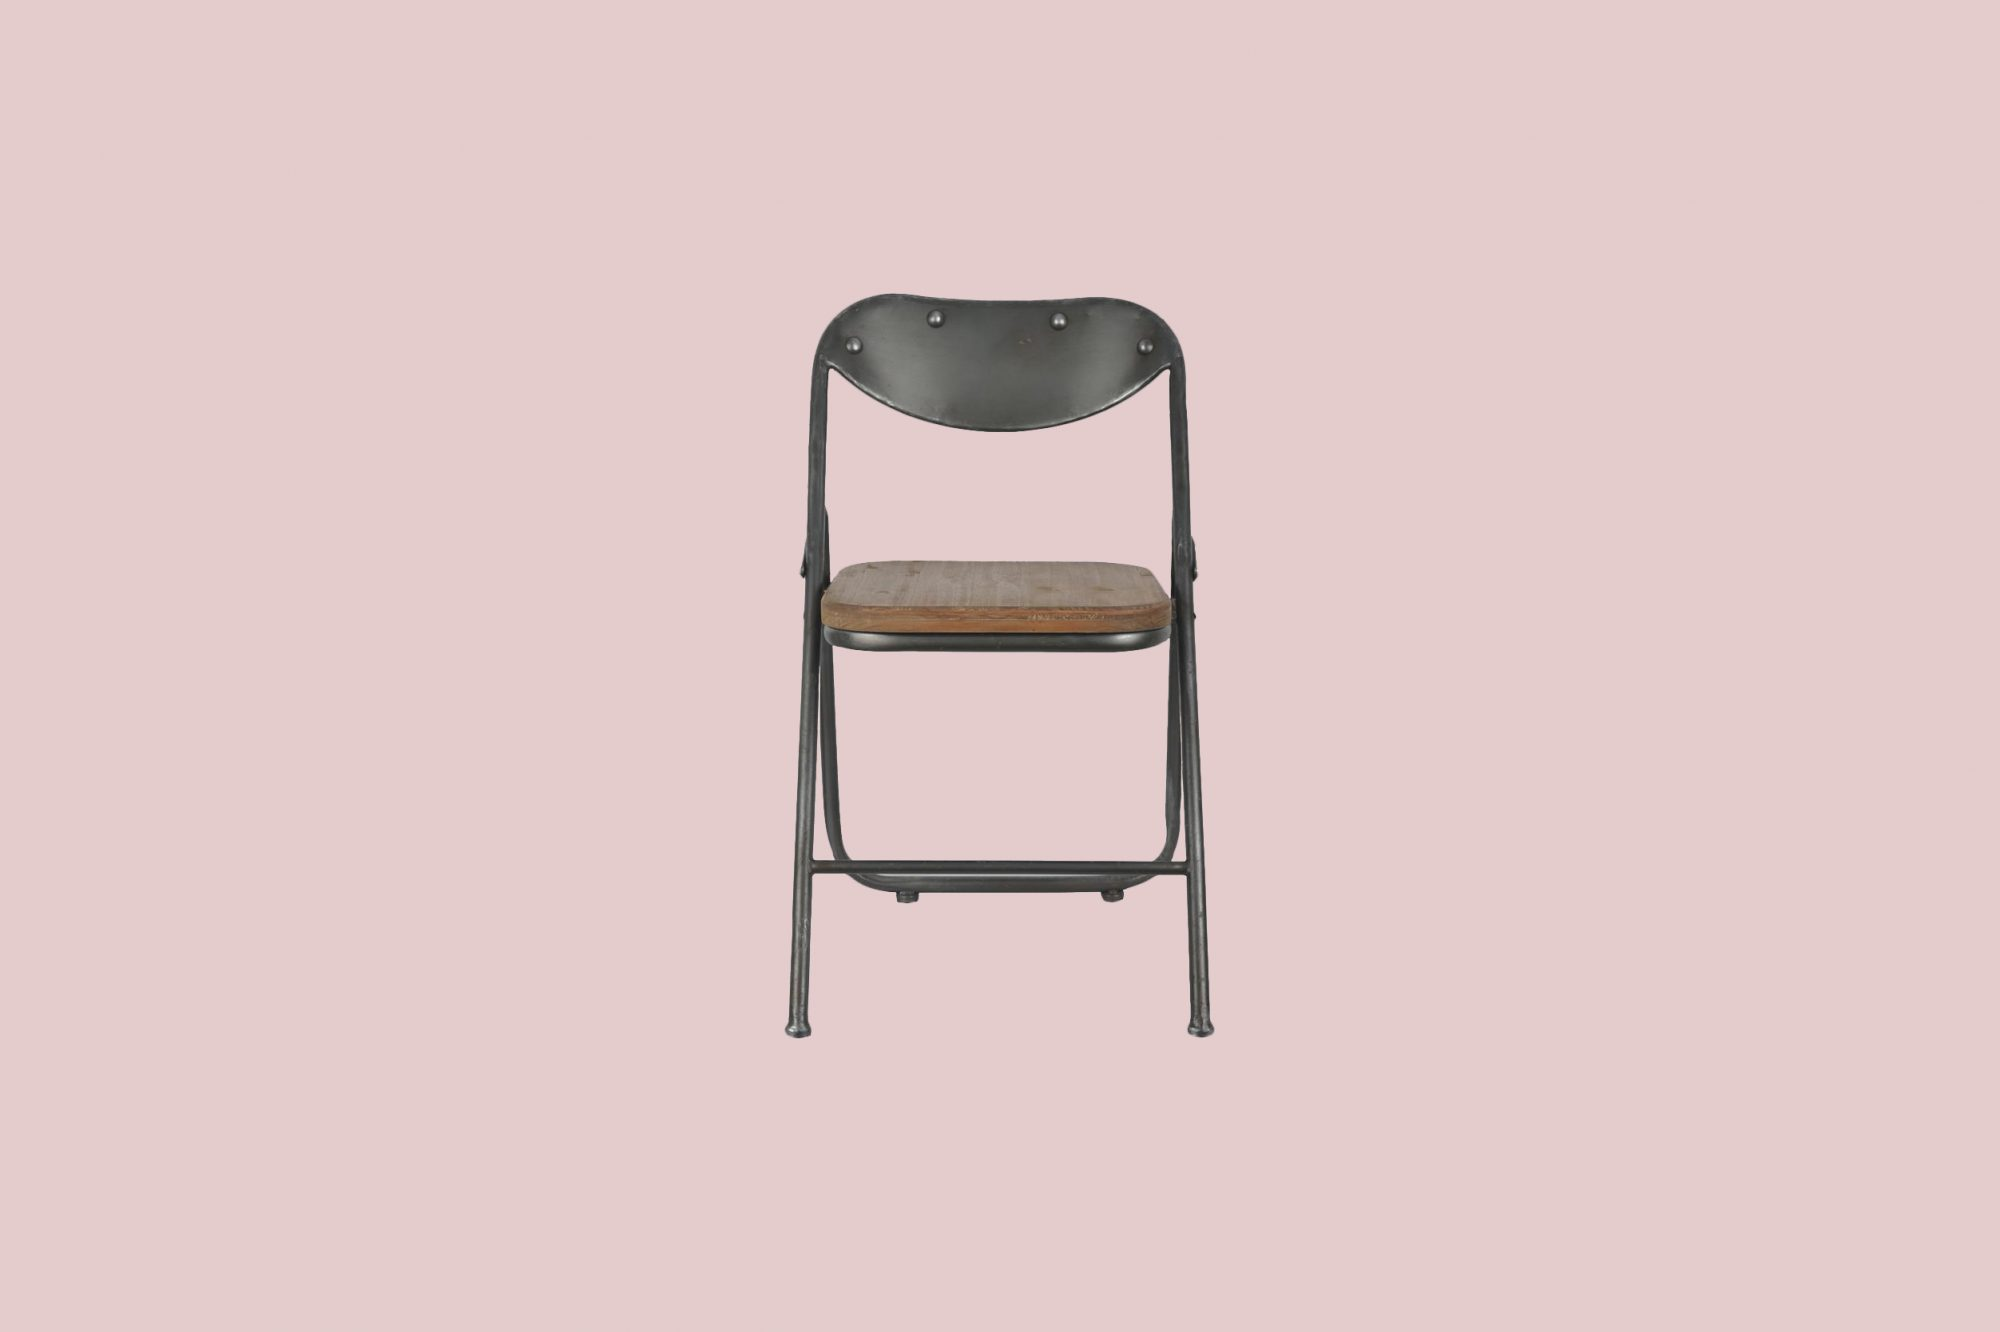 Decor Therapy Vintage Charcoal and Oak Metal and Wood Folding Dining Chair